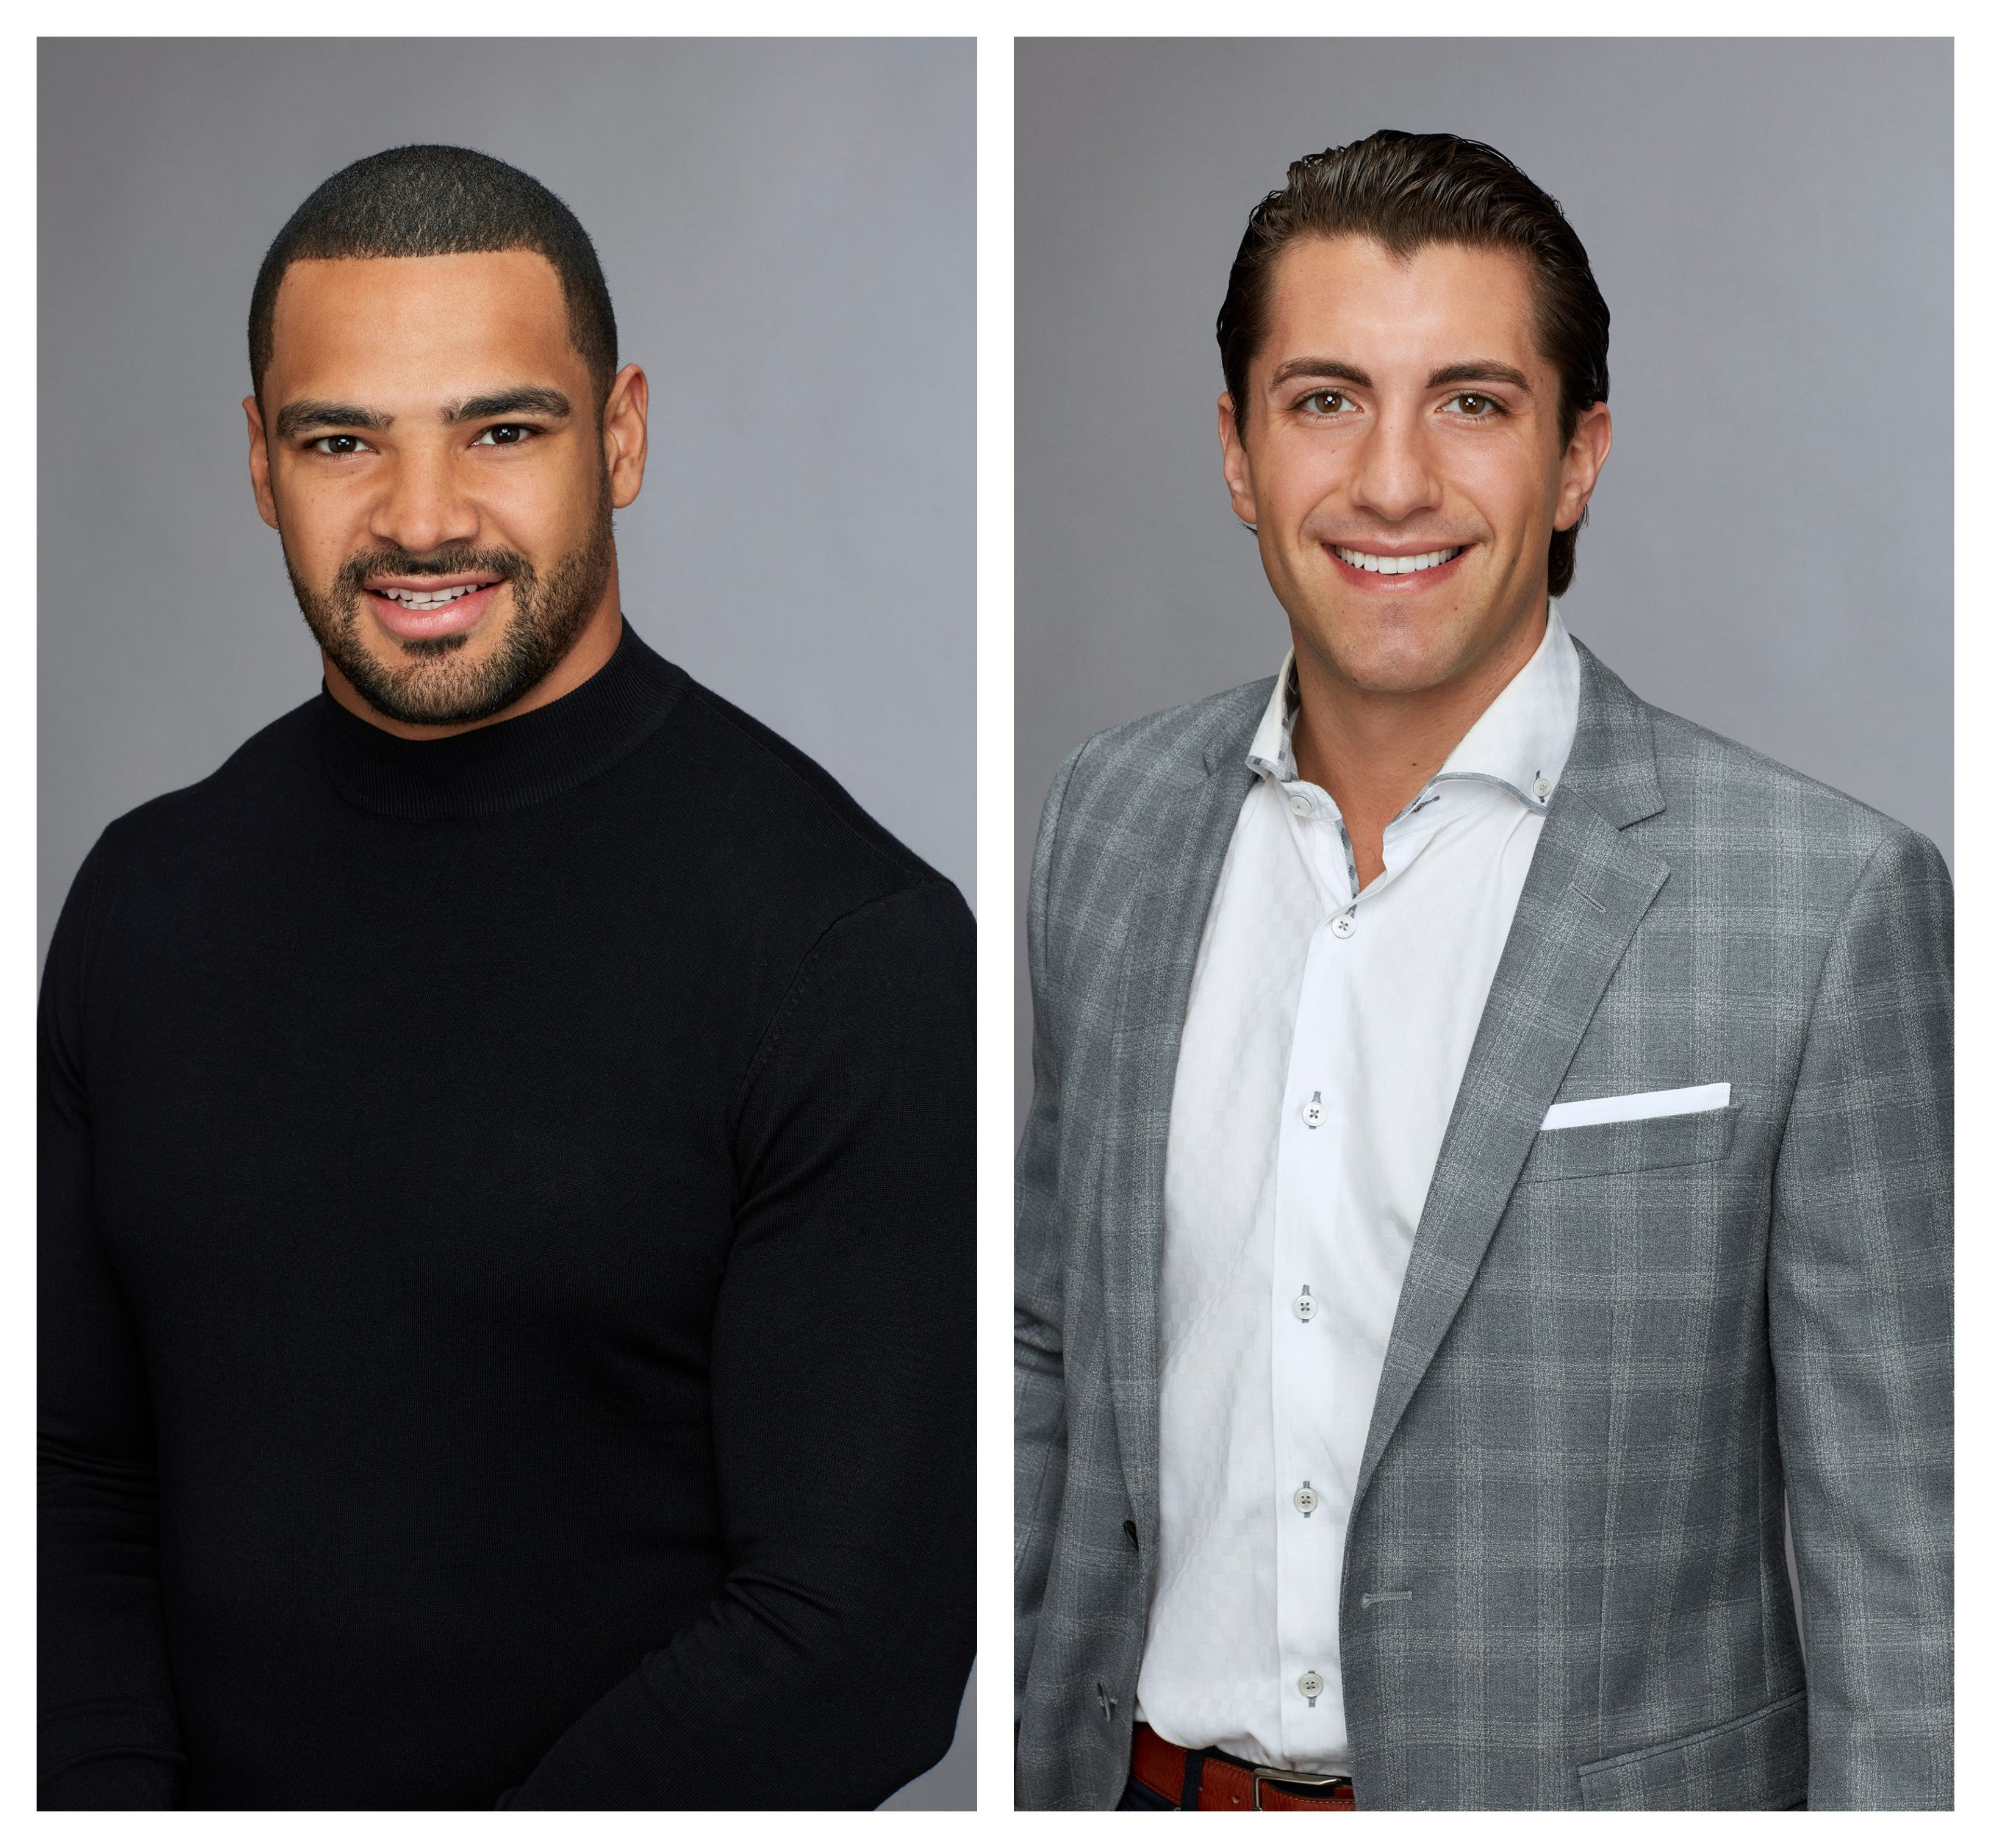 Who is ben from the bachelor dating now 2019